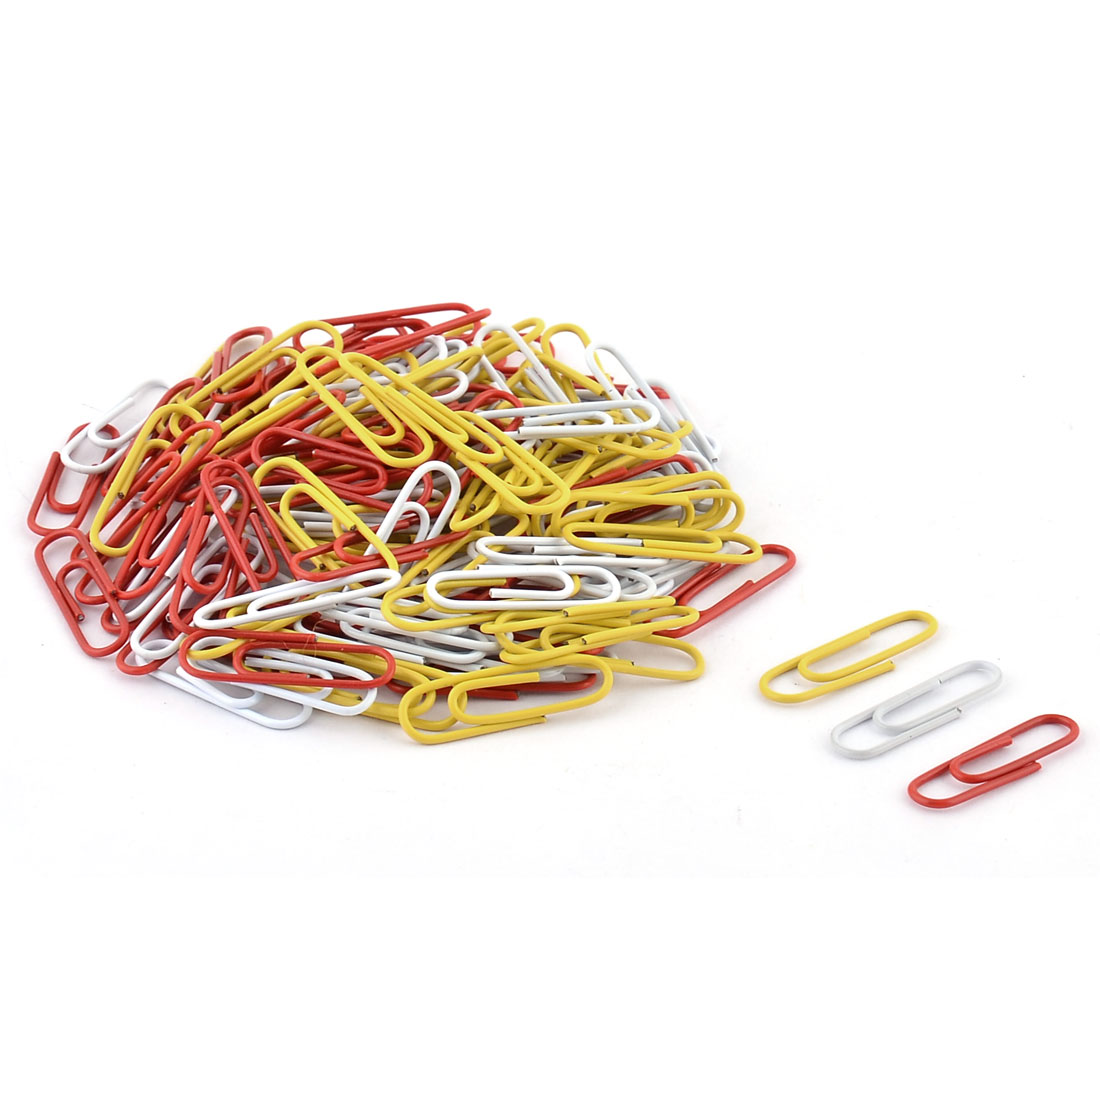 Office Plastic Coated Note Memo Ticket Binder Paper Clip Clamps Tricolor 135 Pcs